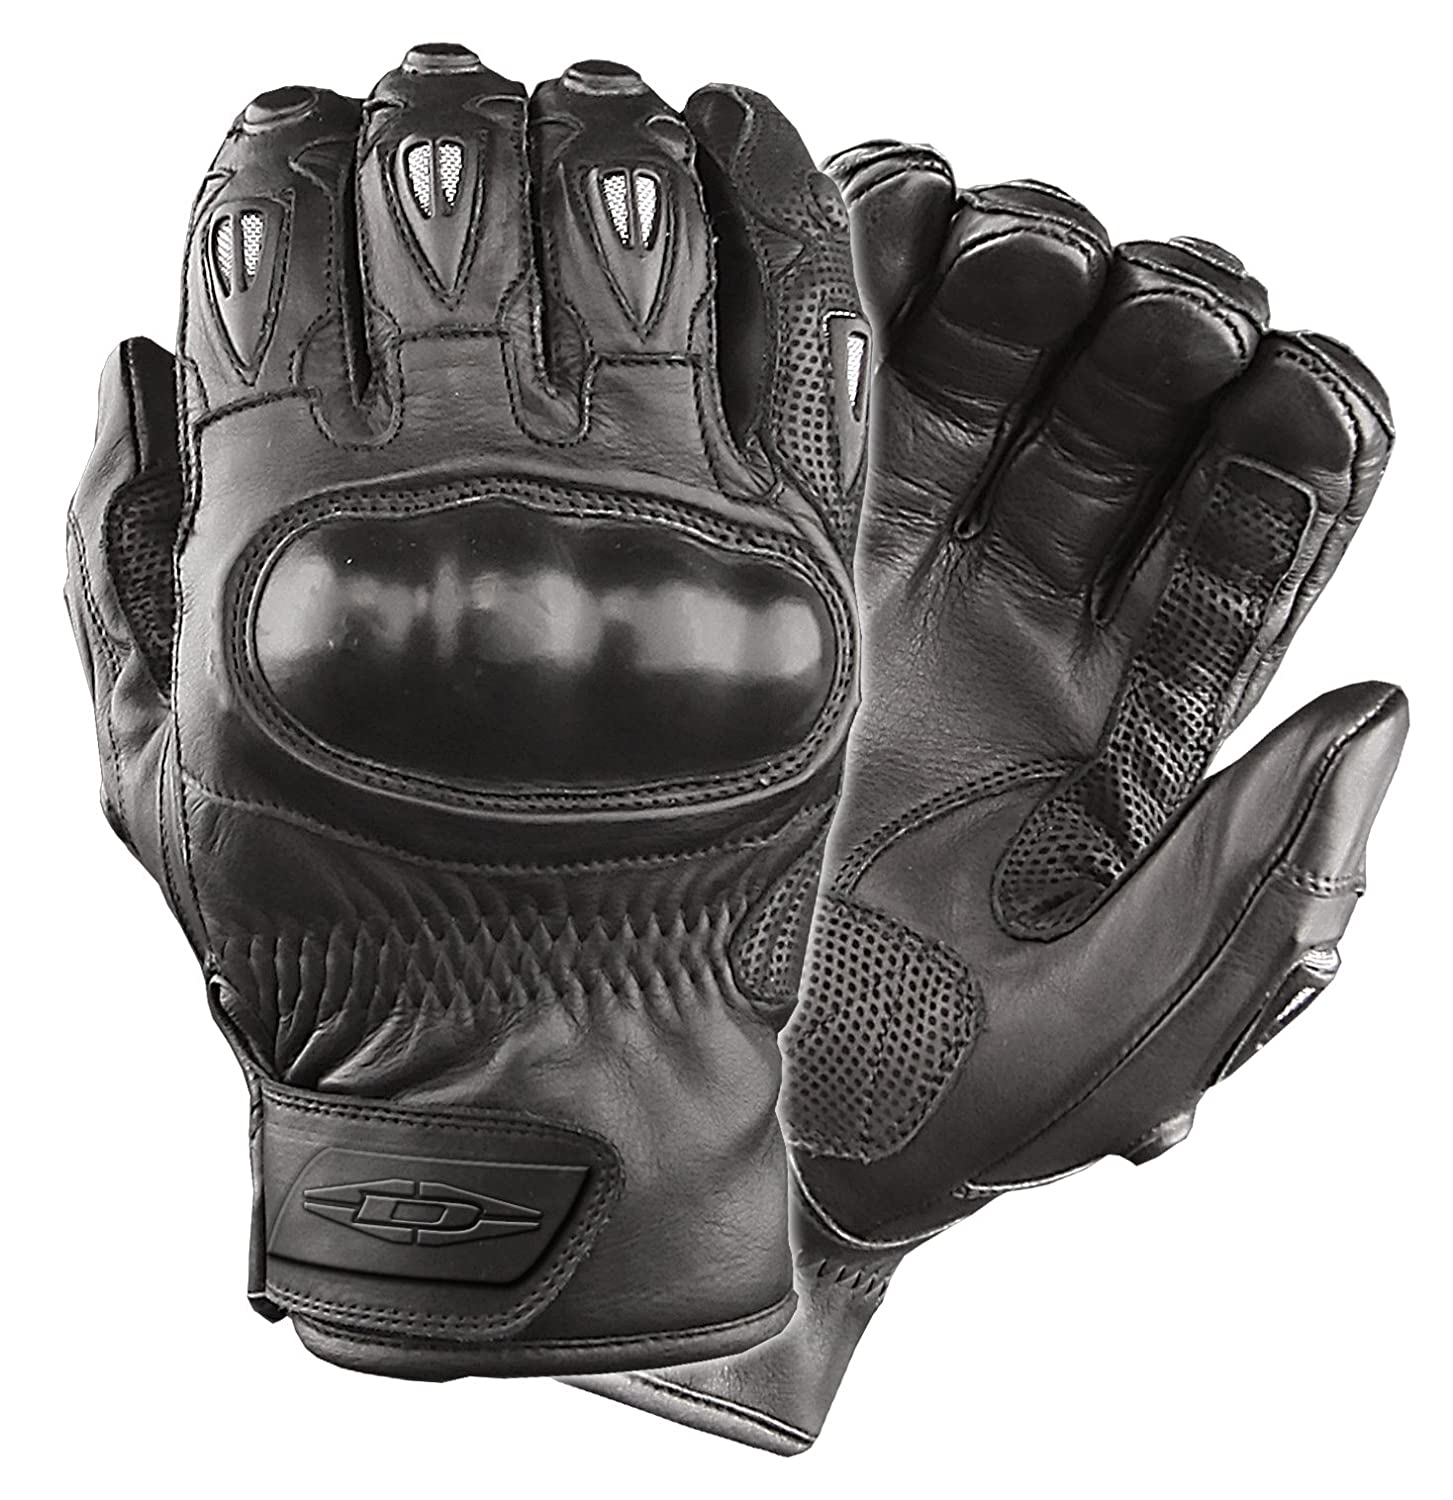 Damascus CRT50 Vector Hard-knuckle Riot Control Gloves XX-Large Damascus Protective Gear CRT50-XXXL